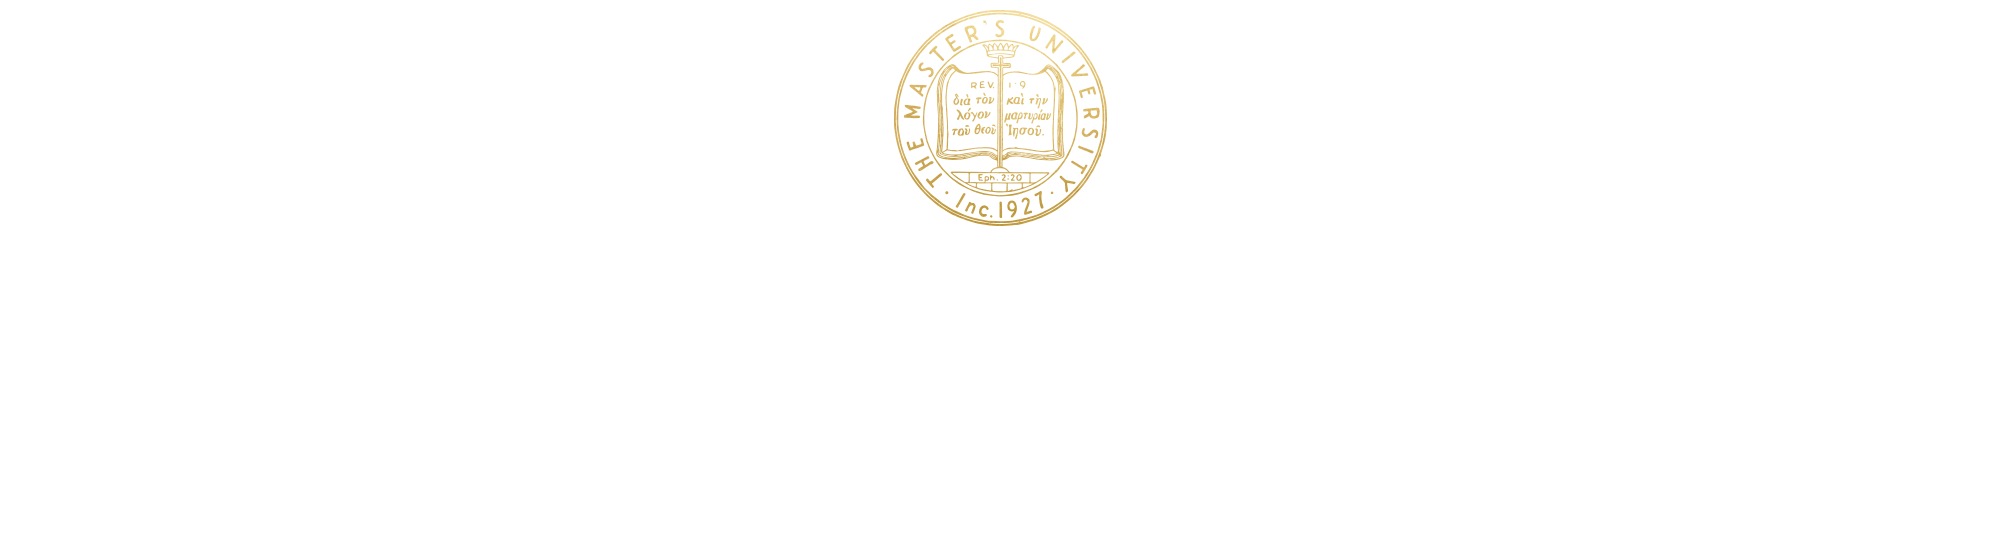 Thinking Biblically with John MacArthur